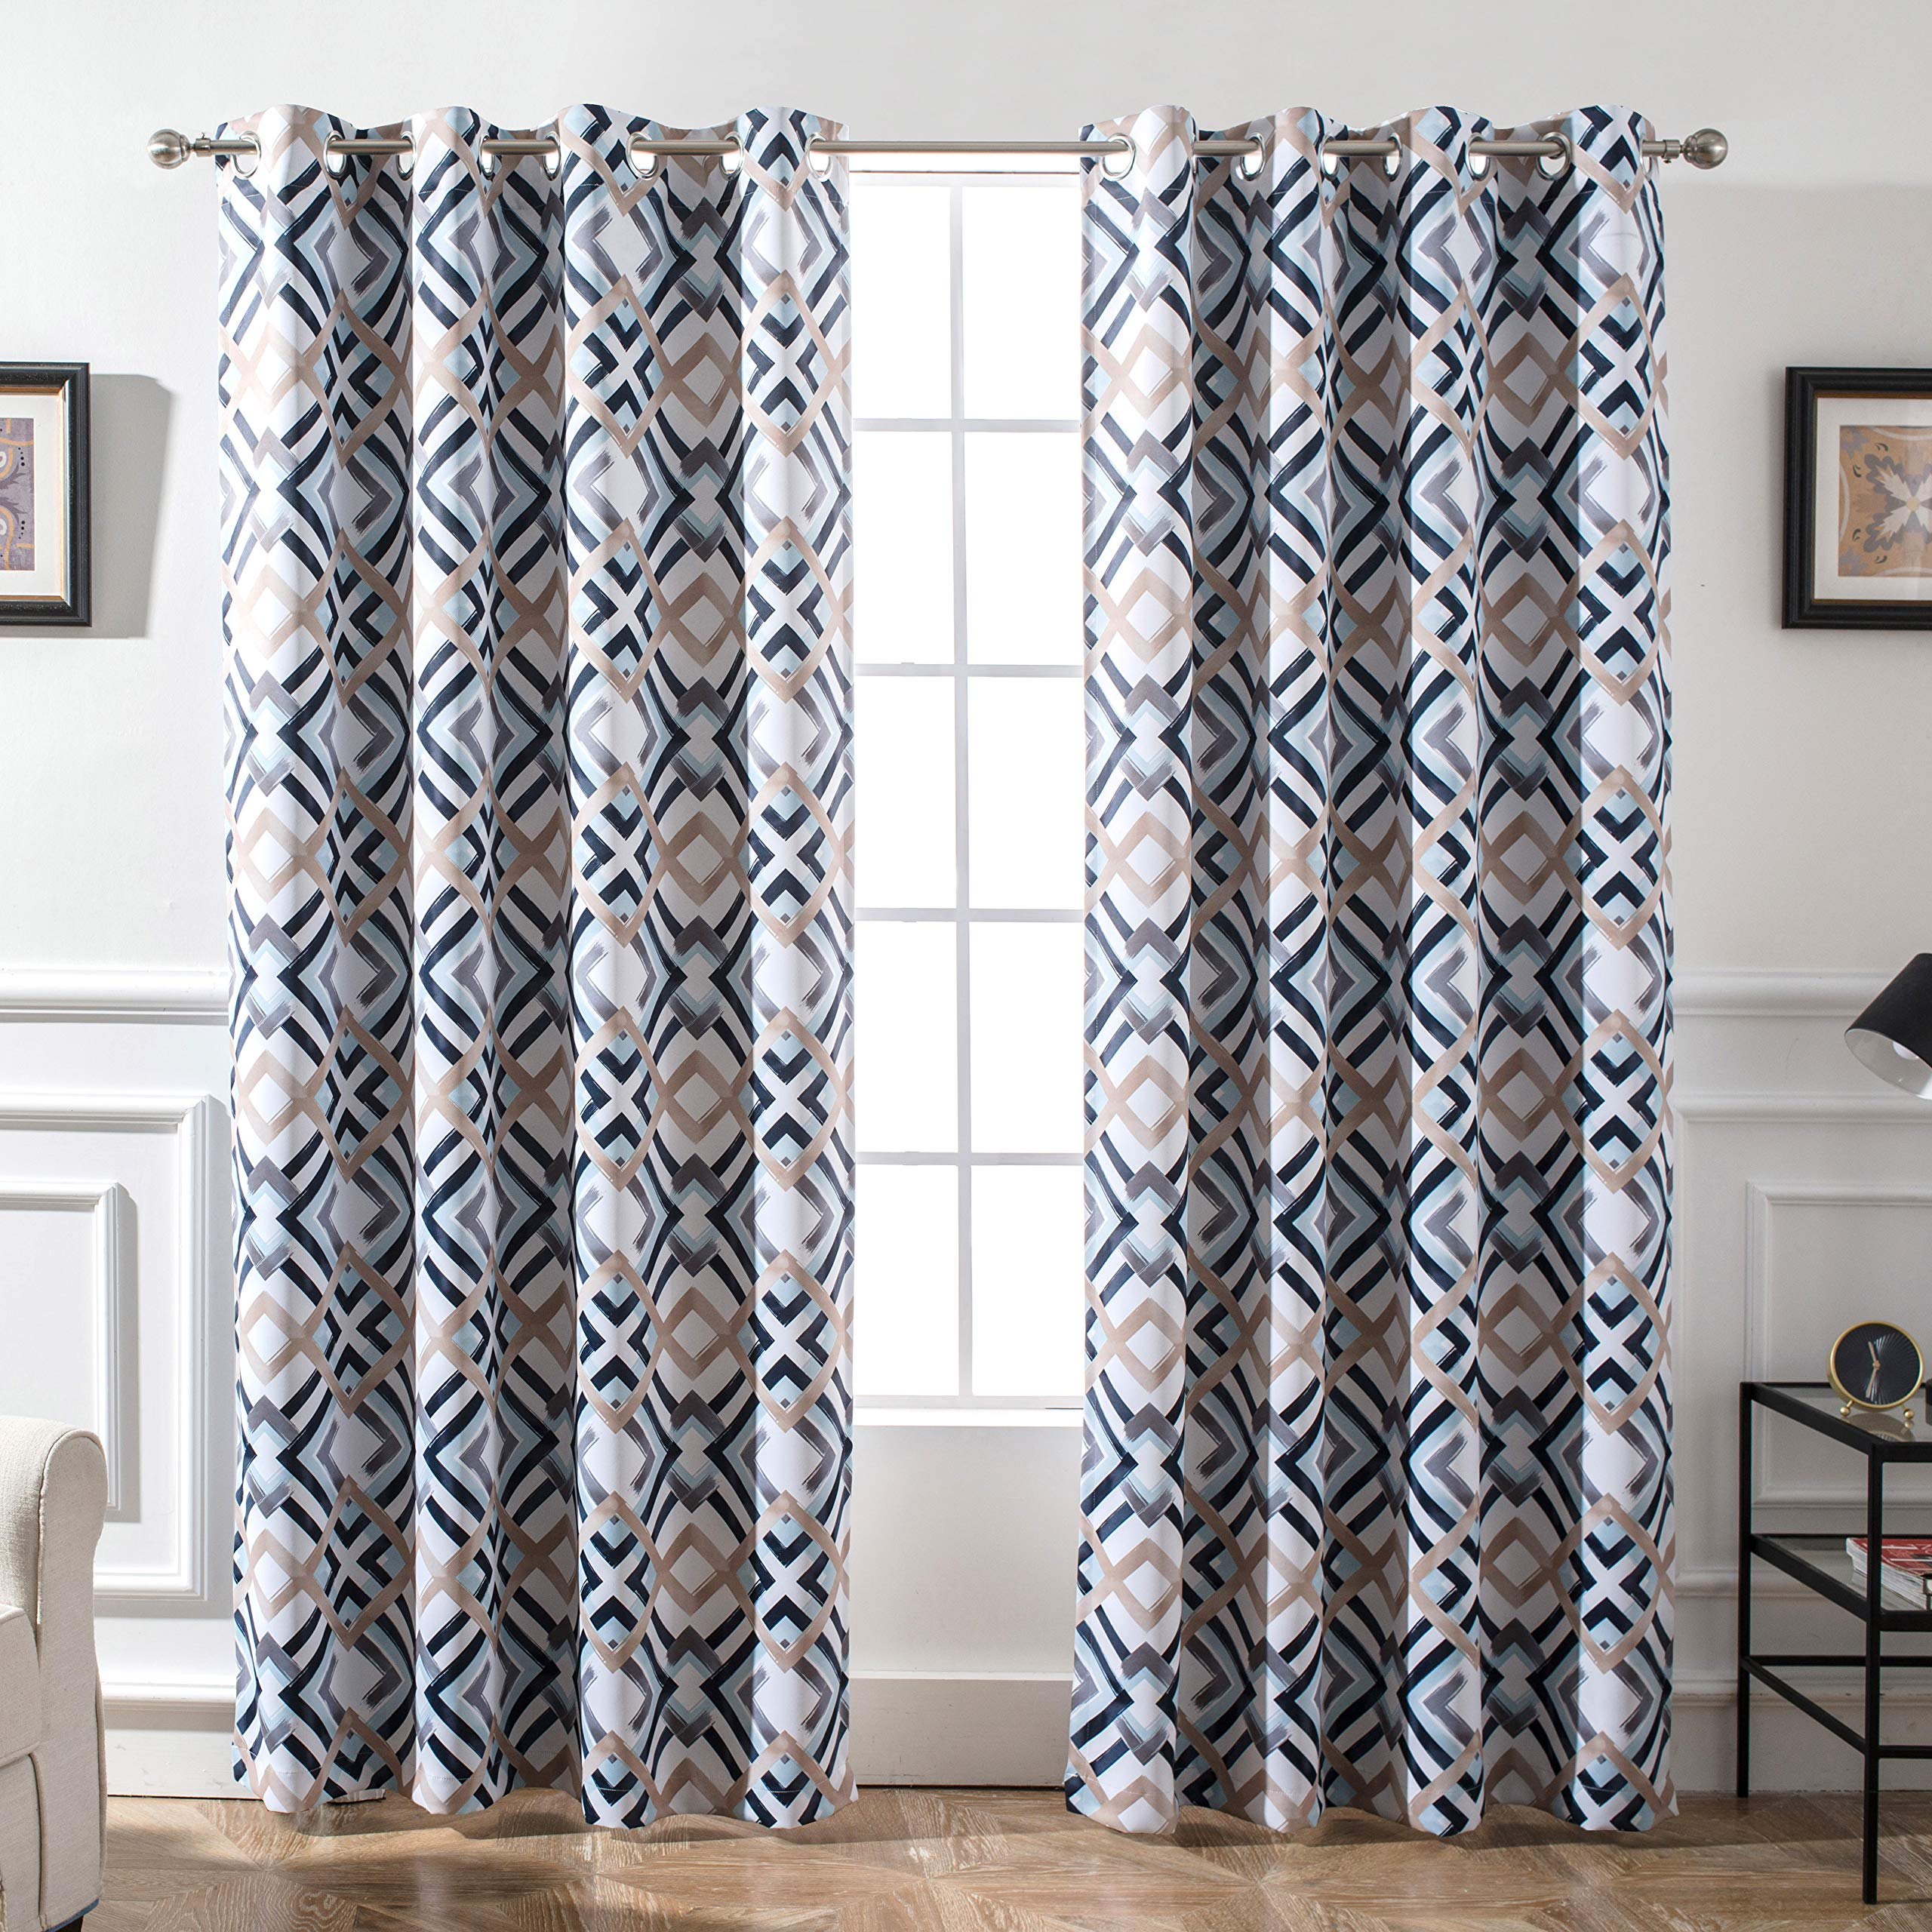 DriftAway Diamond Trellis Watercolor Geometric Checker Plaid Pattern Blackout Room Darkening Unlined Thermal Insulated Grommet Window Curtains Set 2 Panels 52 Inch by 84 Inch Header Navy by DriftAway